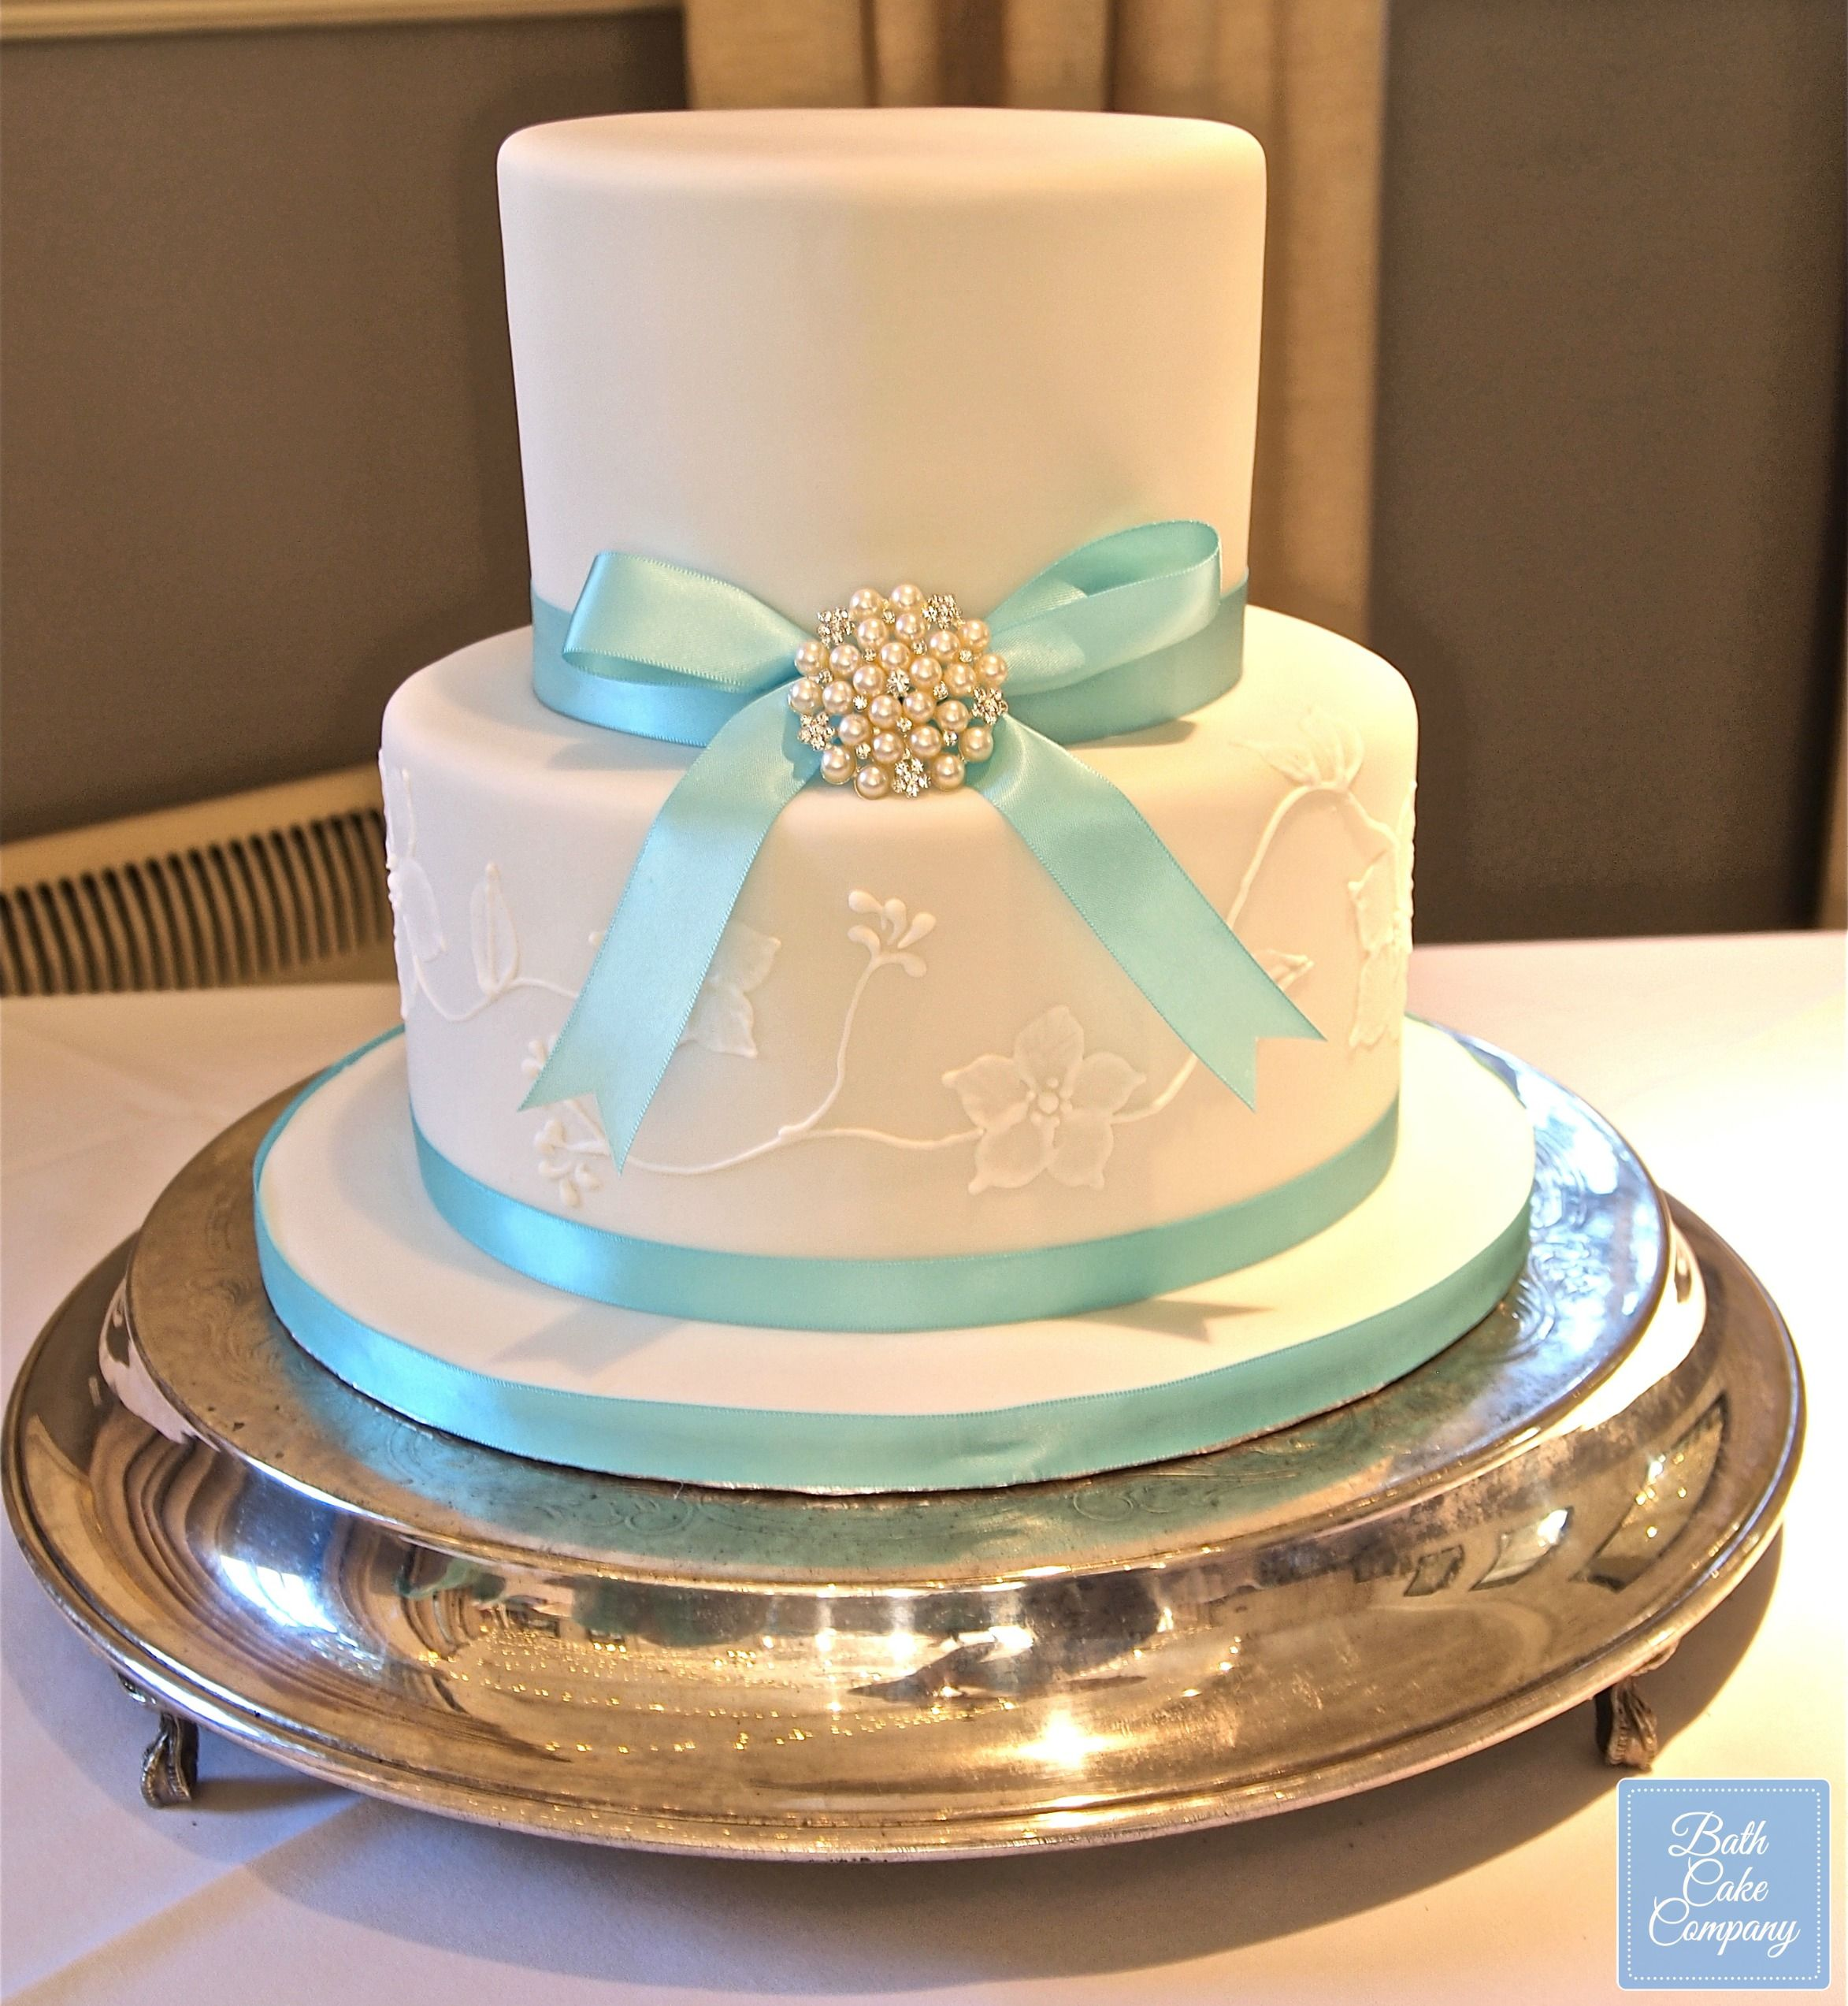 A Beautiful Two Tier Wedding Cake with Brush Embroidery by Bath Cake ...